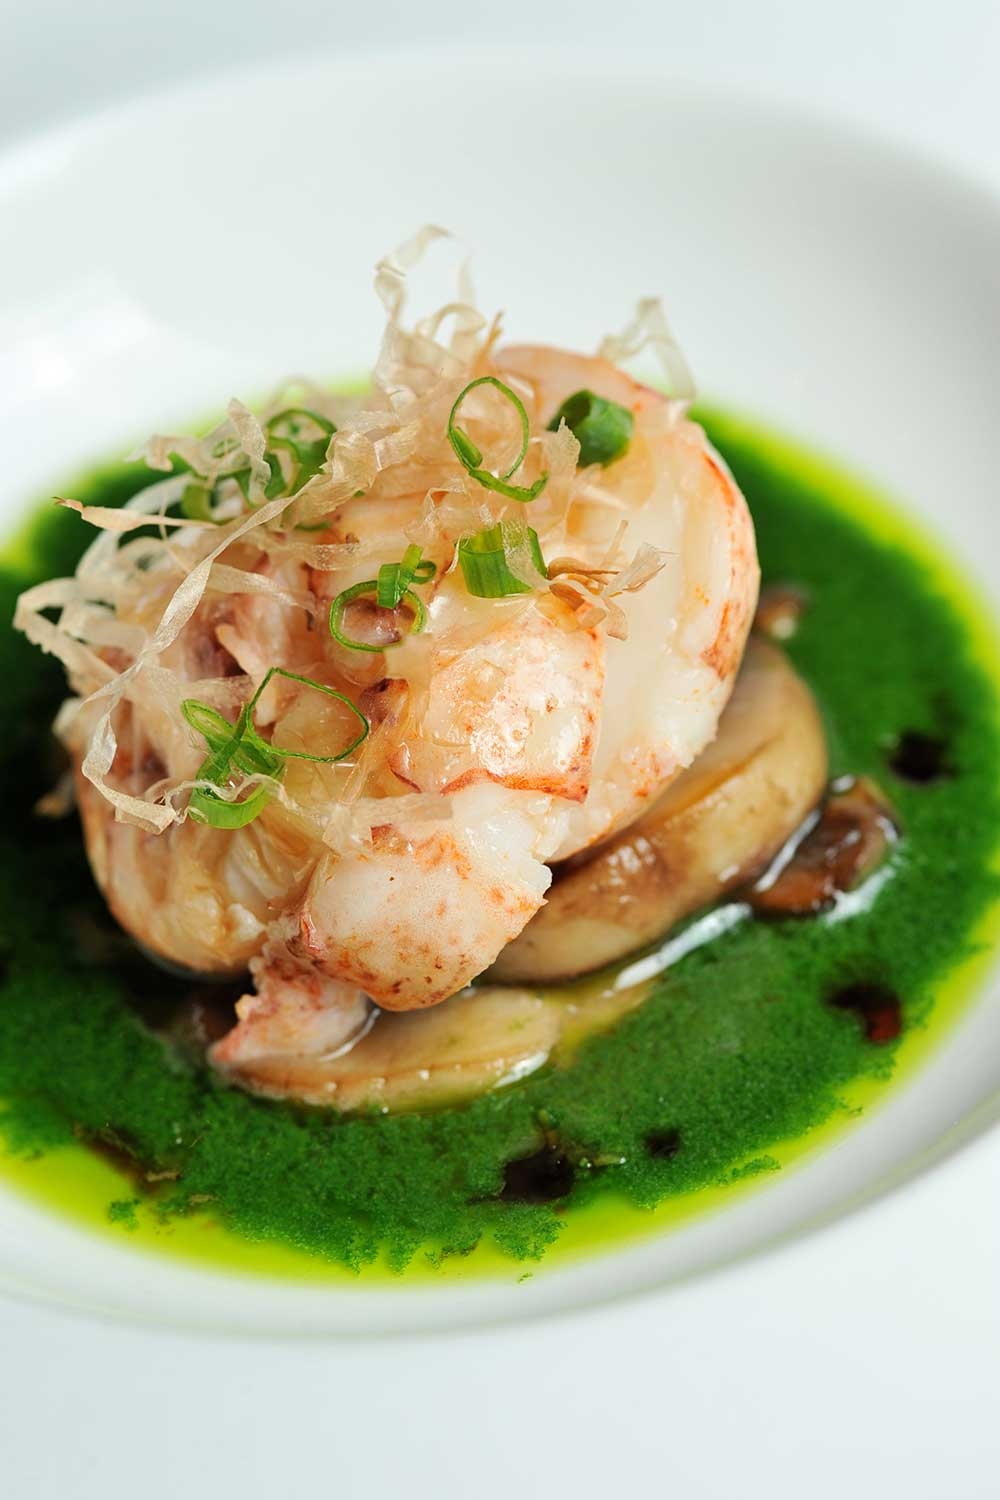 Shrimp dish placed nicely on some green colored sauce in white plate